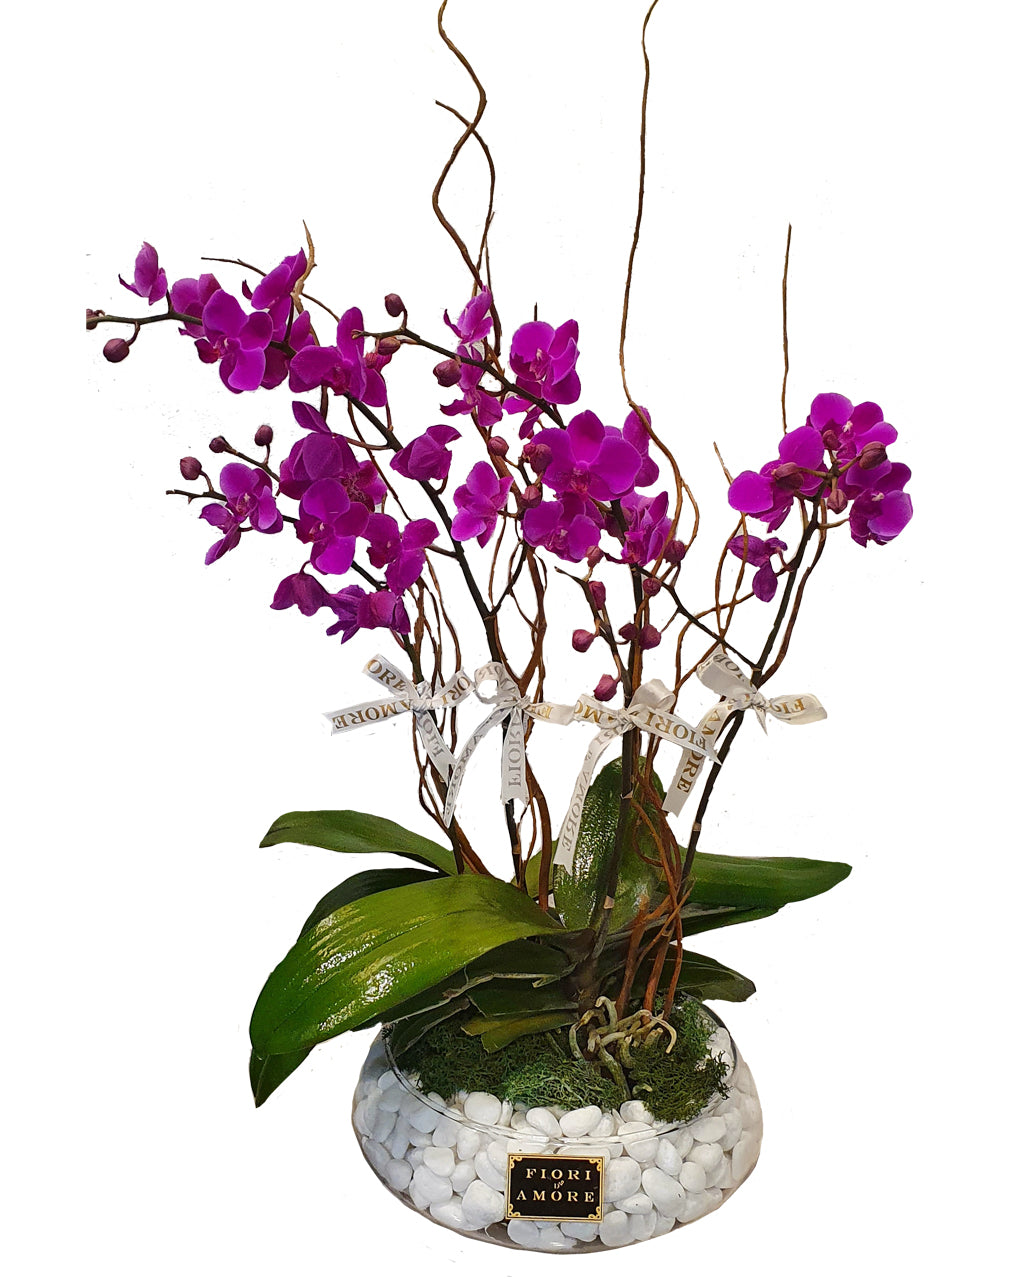 4 mini orchids in glass